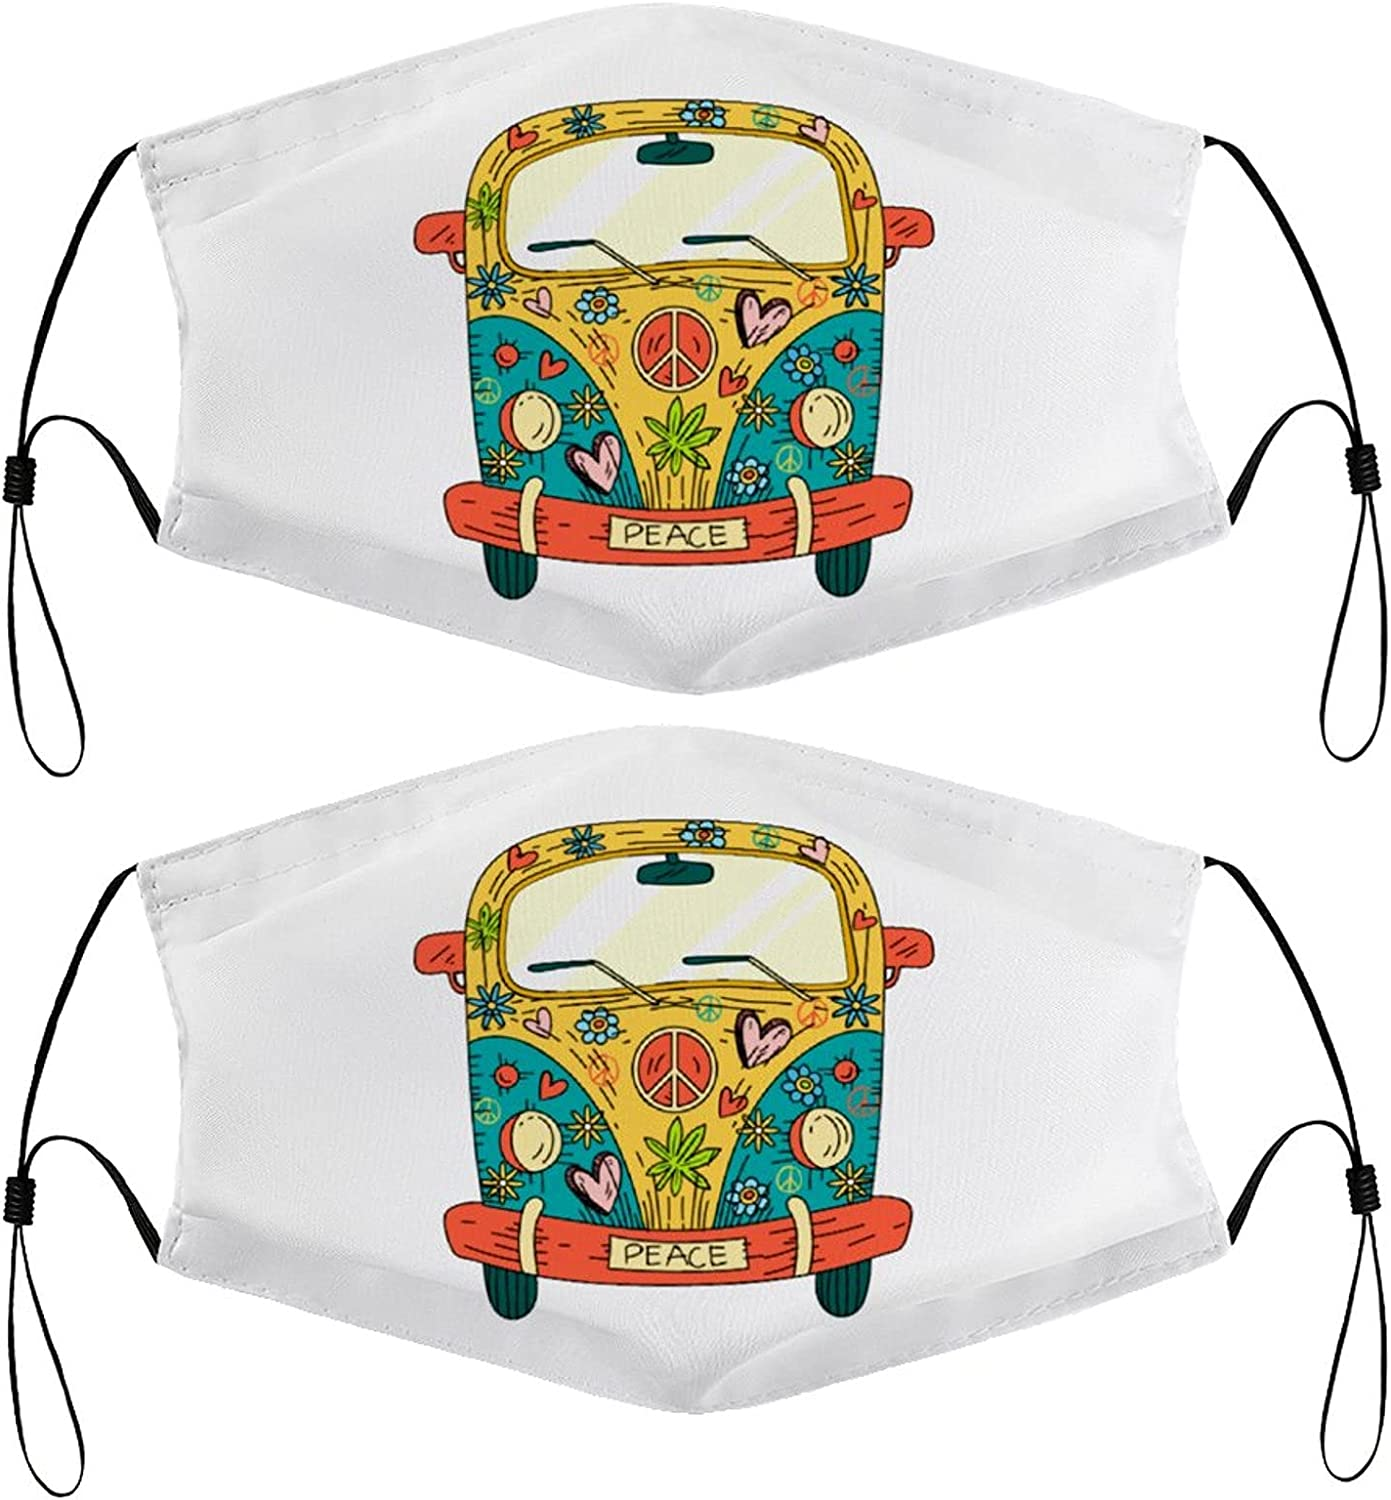 Flower Bus Kids Face Masks Set of 2 with 4 Filters Washable Reusable Breathable Black Cloth Bandanas Scarf for Unisex Boys Girls